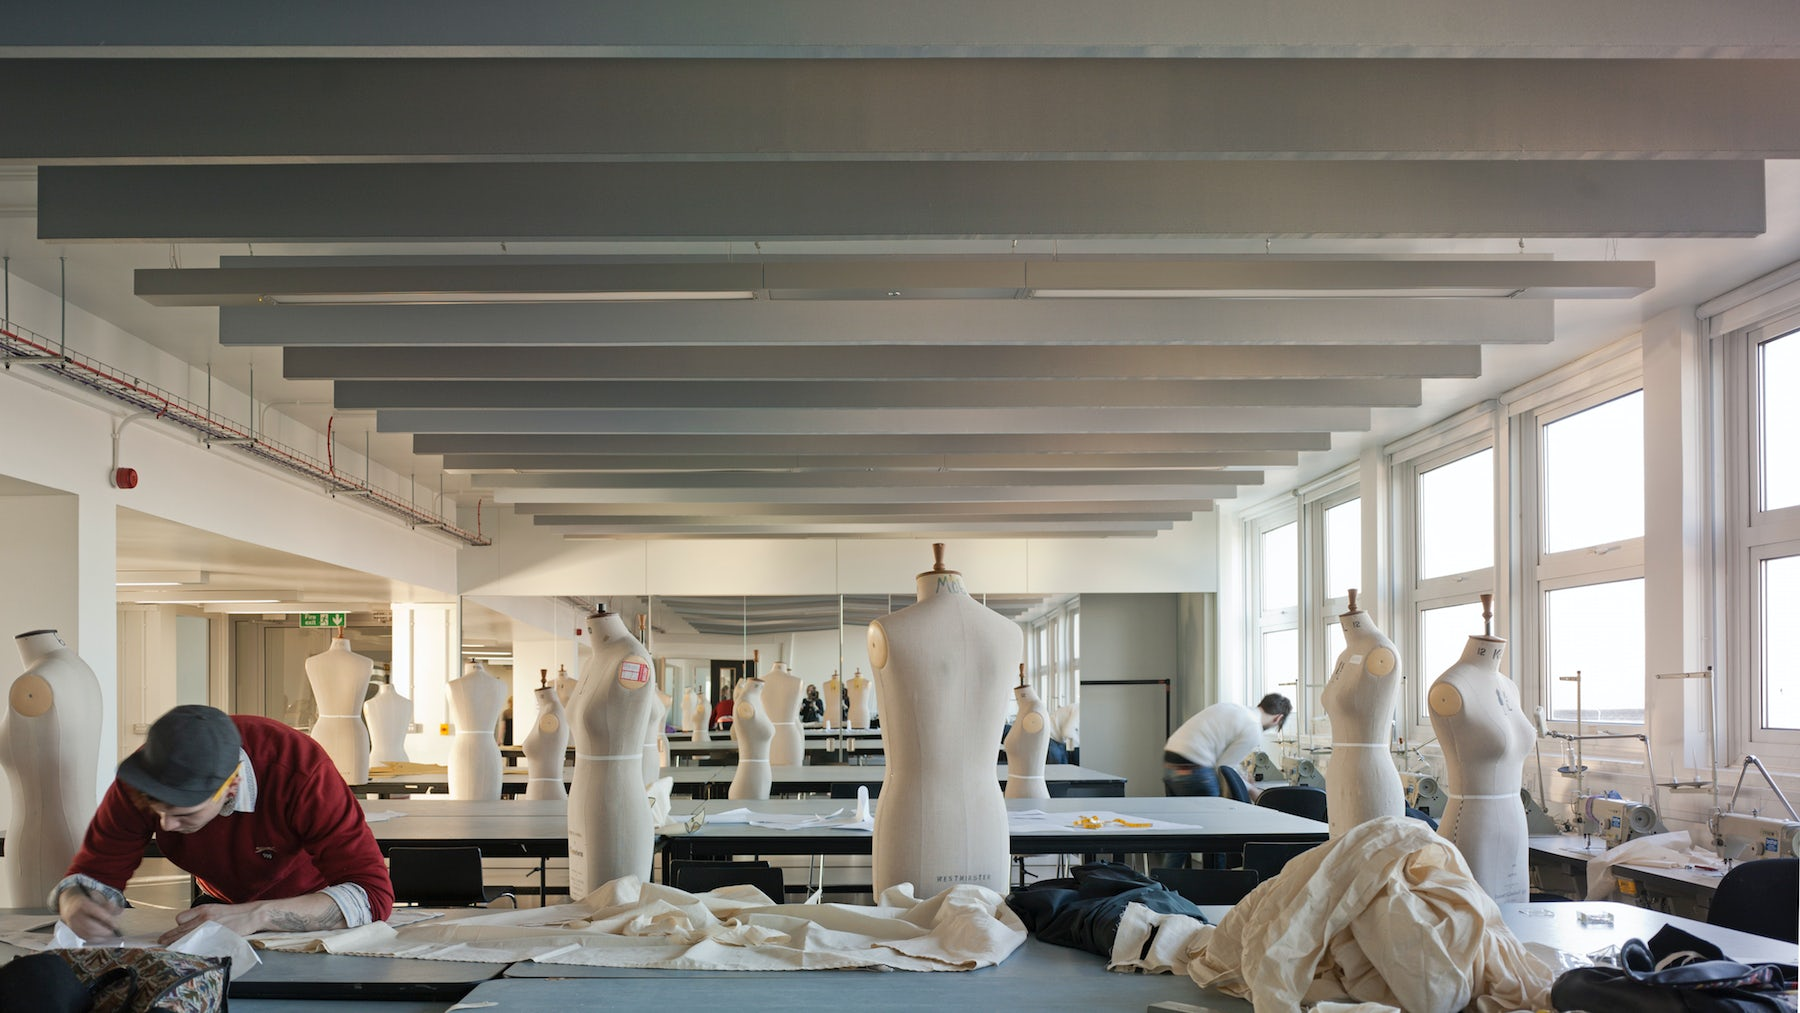 University of Westminster fashion studio | Source: Courtesy